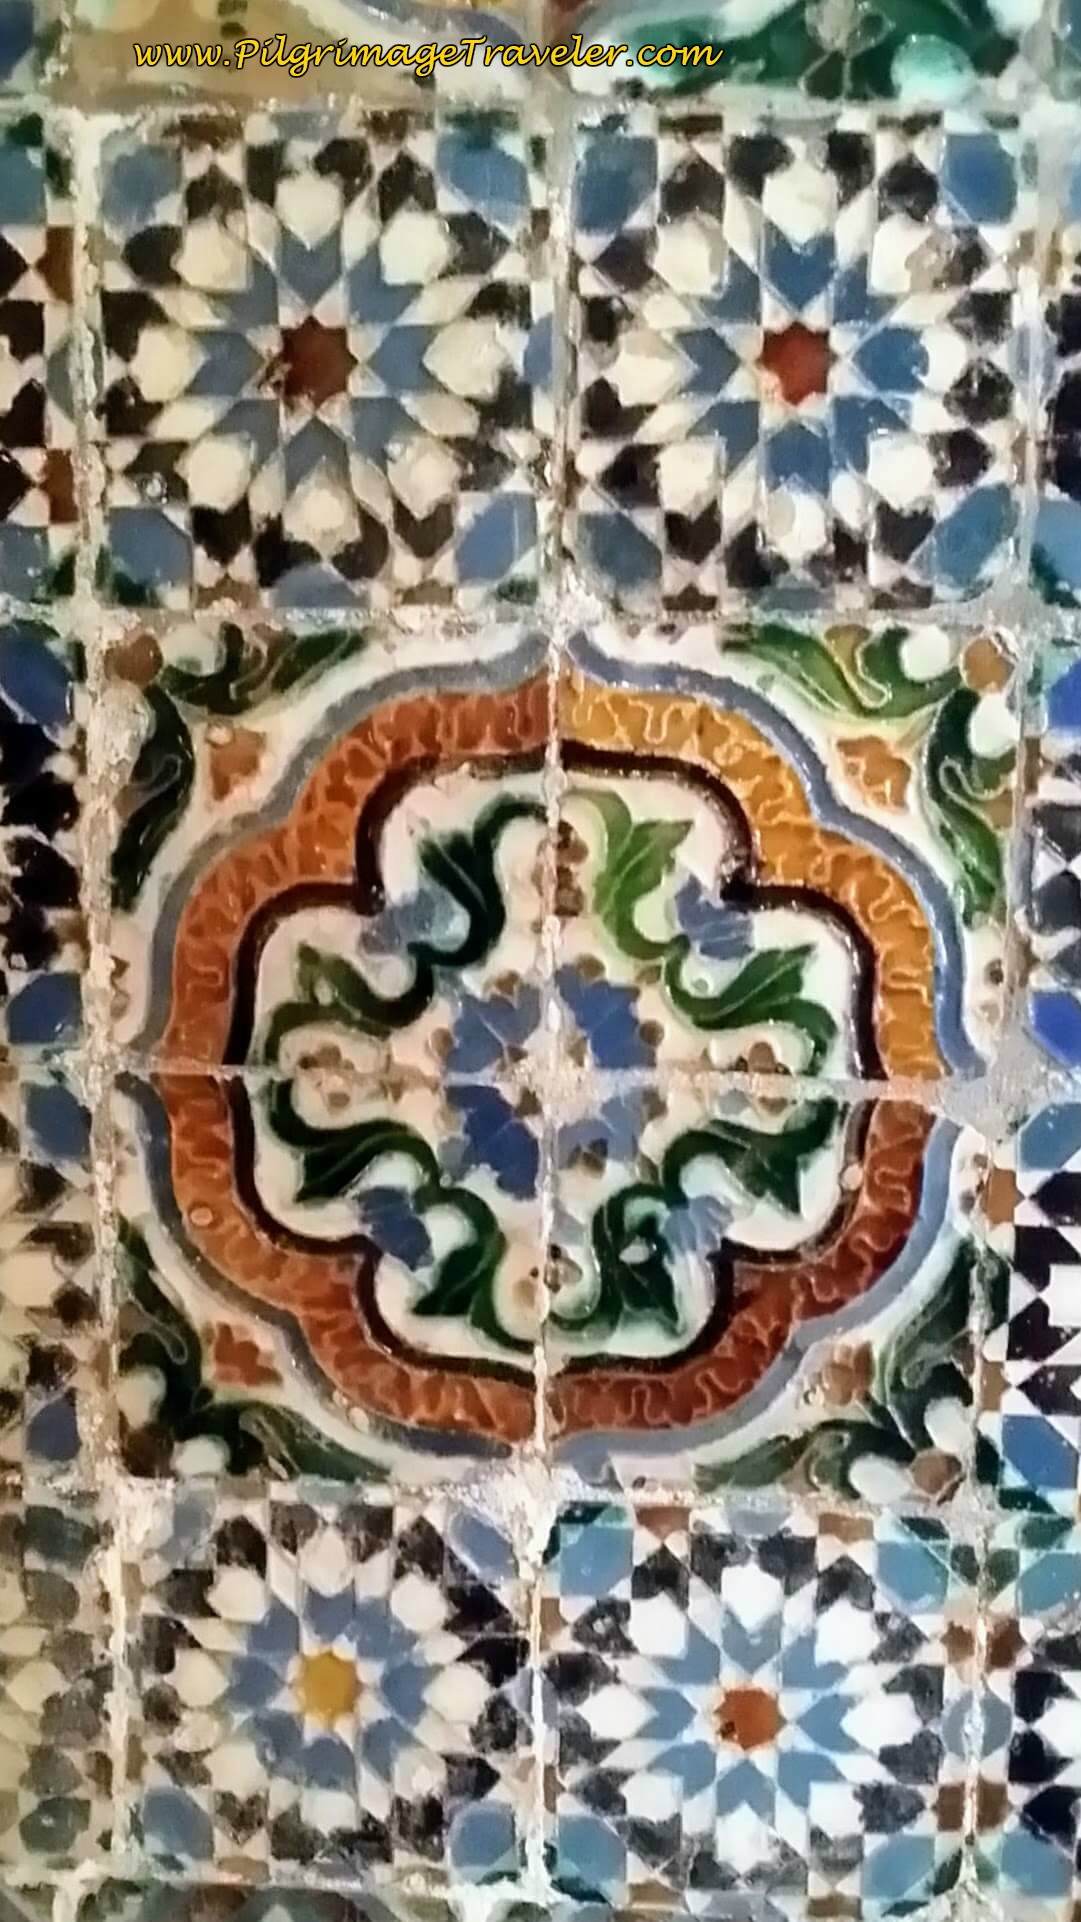 16th C. Edged Múdejar Tile from Seville